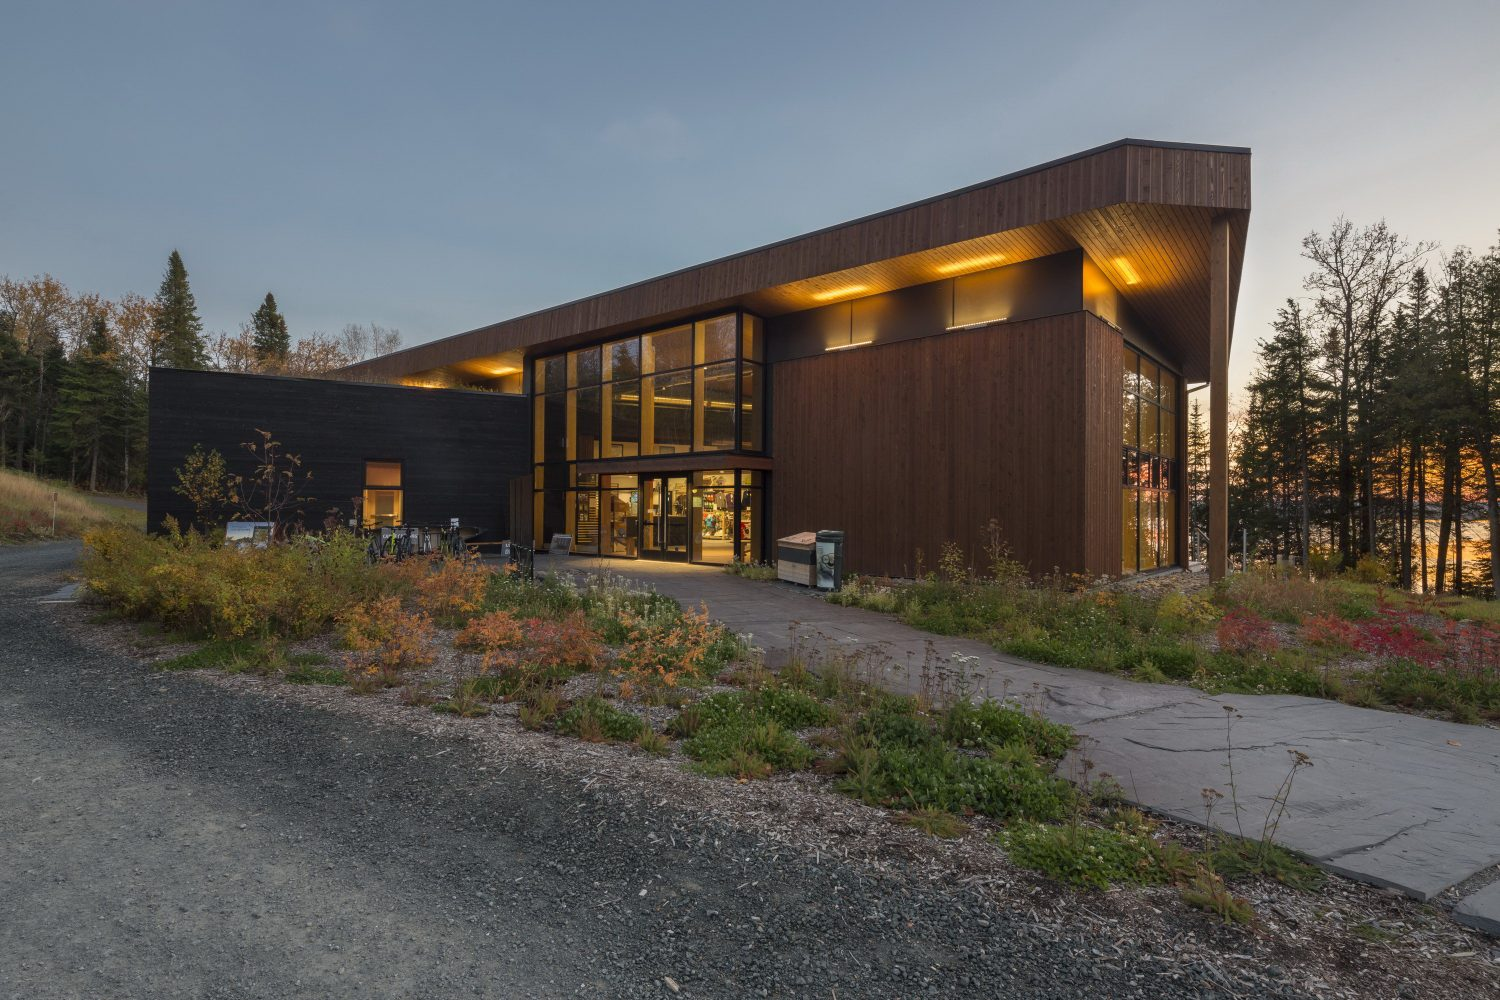 Parc national du Lac-Témiscouata Discovery & Visitor Centre